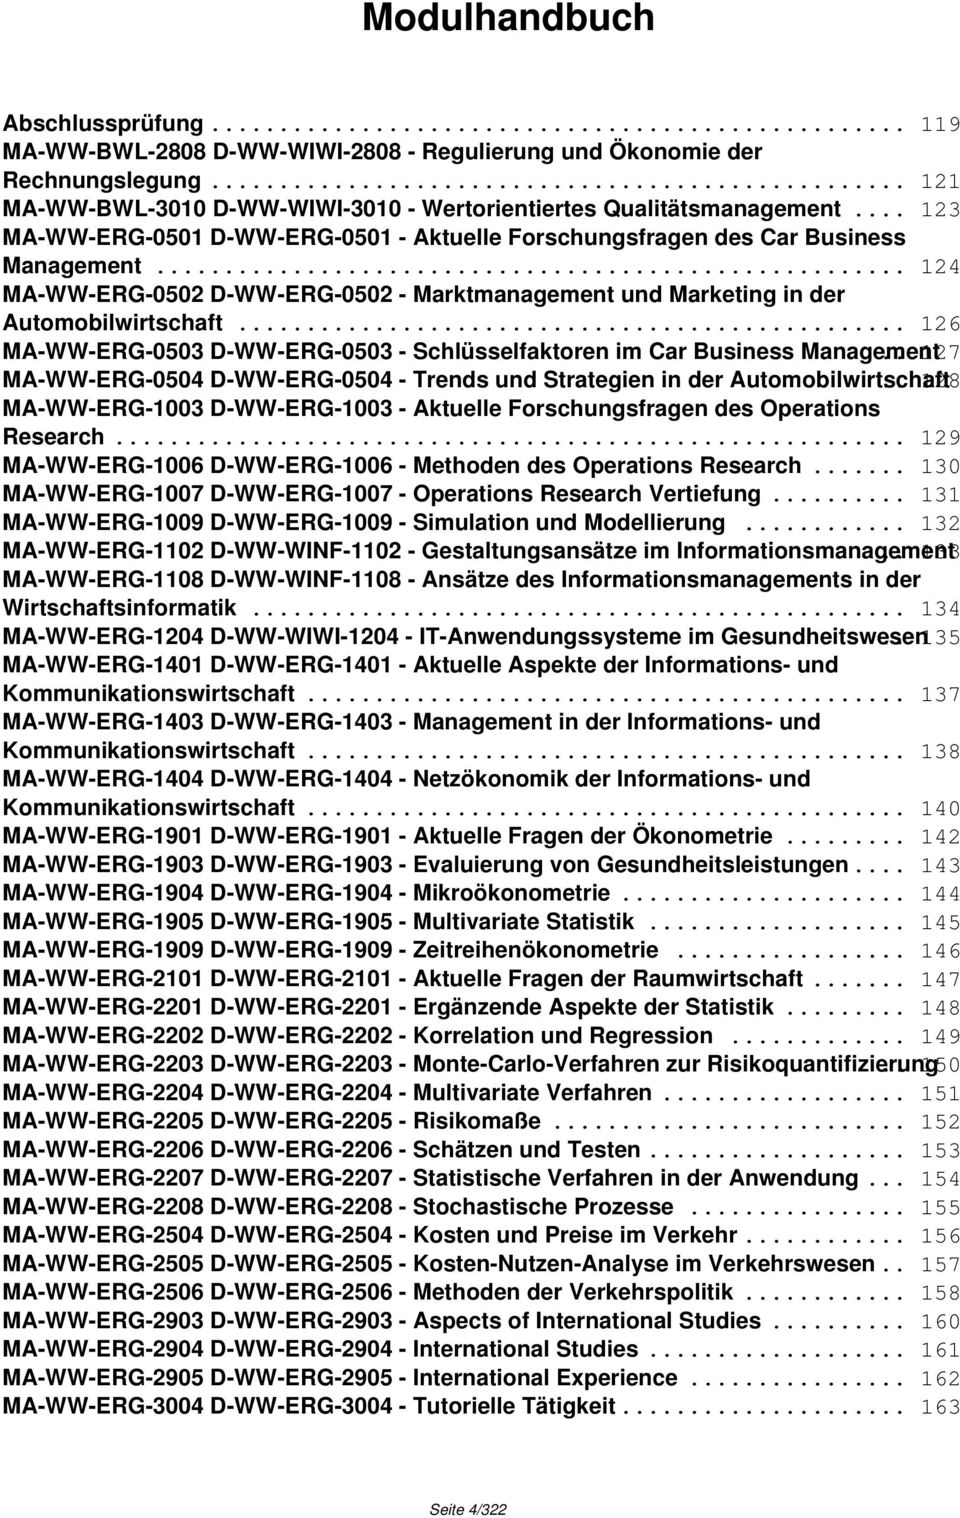 .. 126 MA-WW-ERG-0503 D-WW-ERG-0503 - Schlüsselfaktoren im Car Business Management.. 127 MA-WW-ERG-0504 D-WW-ERG-0504 - Trends und Strategien in der Automobilwirtschaft.